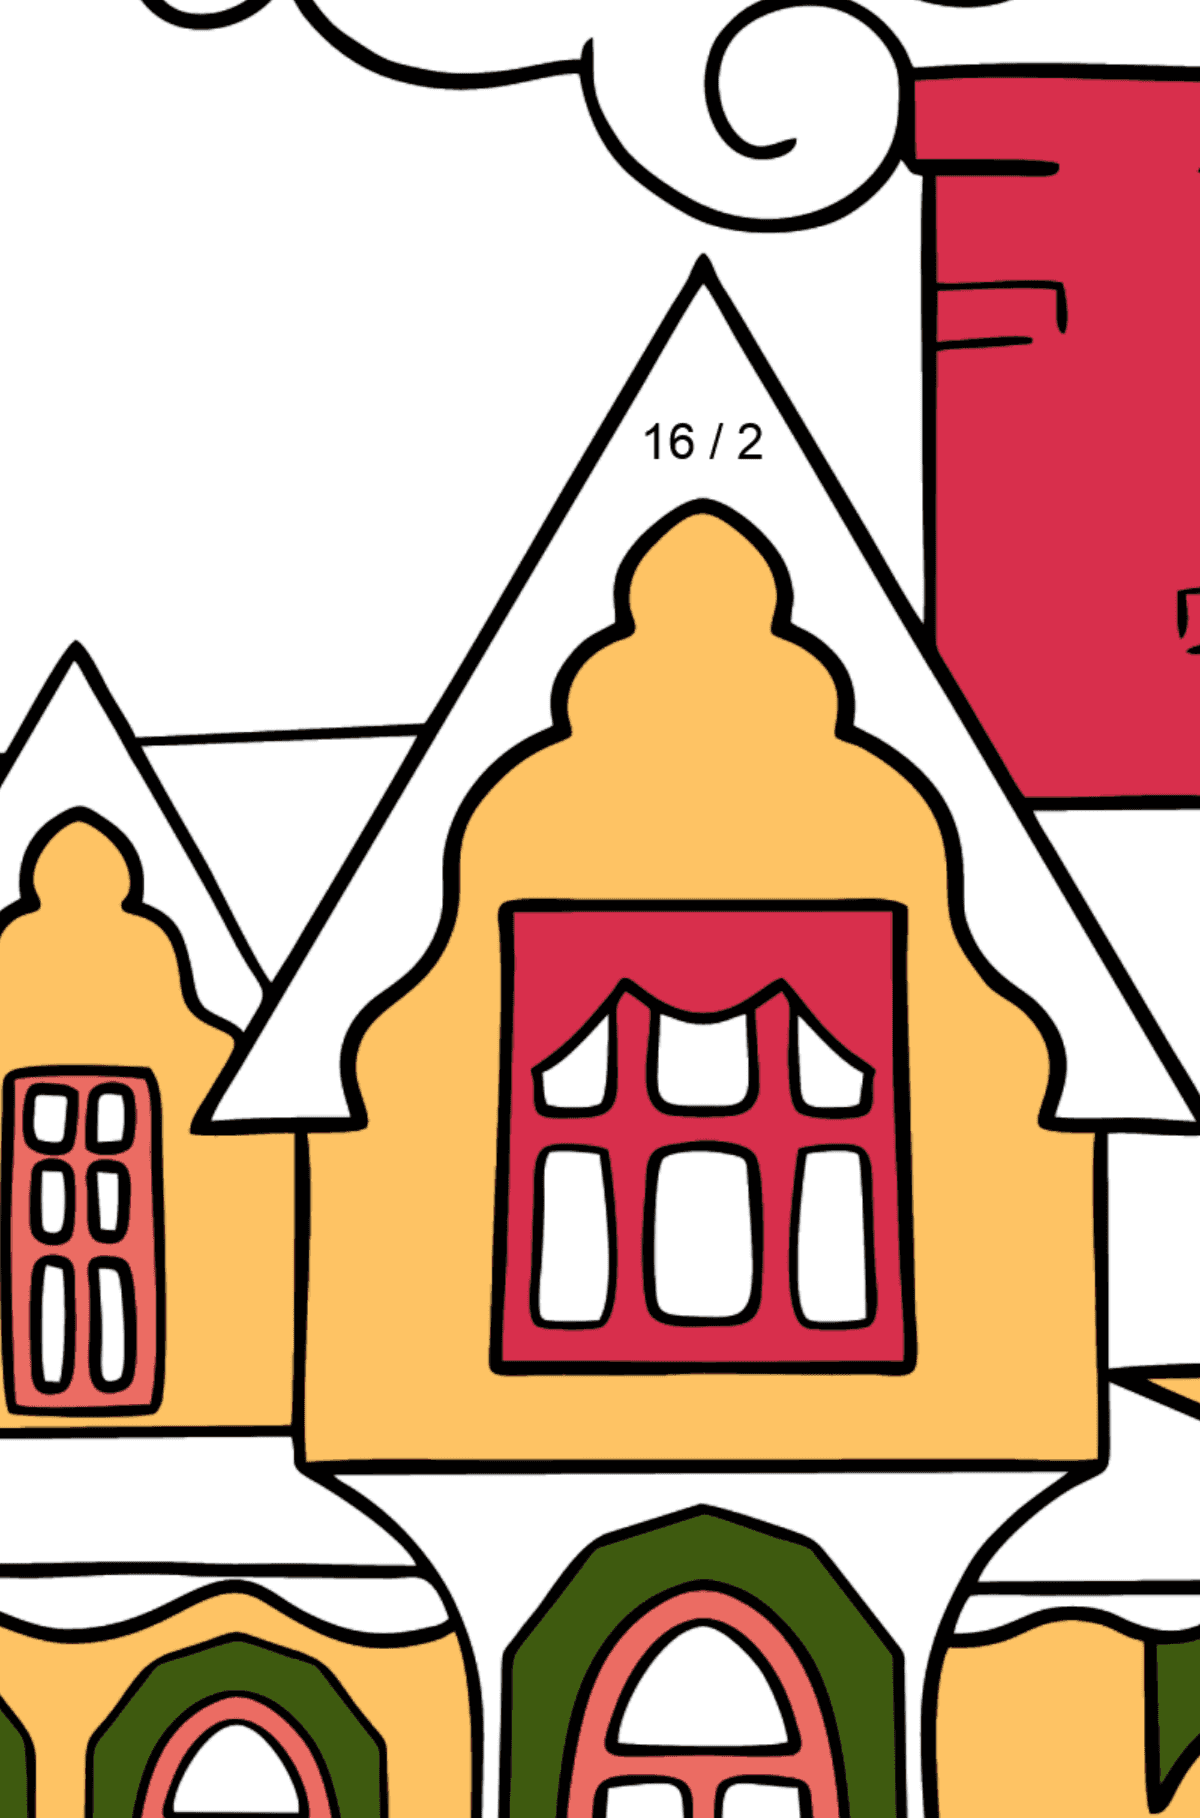 Simple Coloring Page - A Miraculous House - Math Coloring - Division for Kids